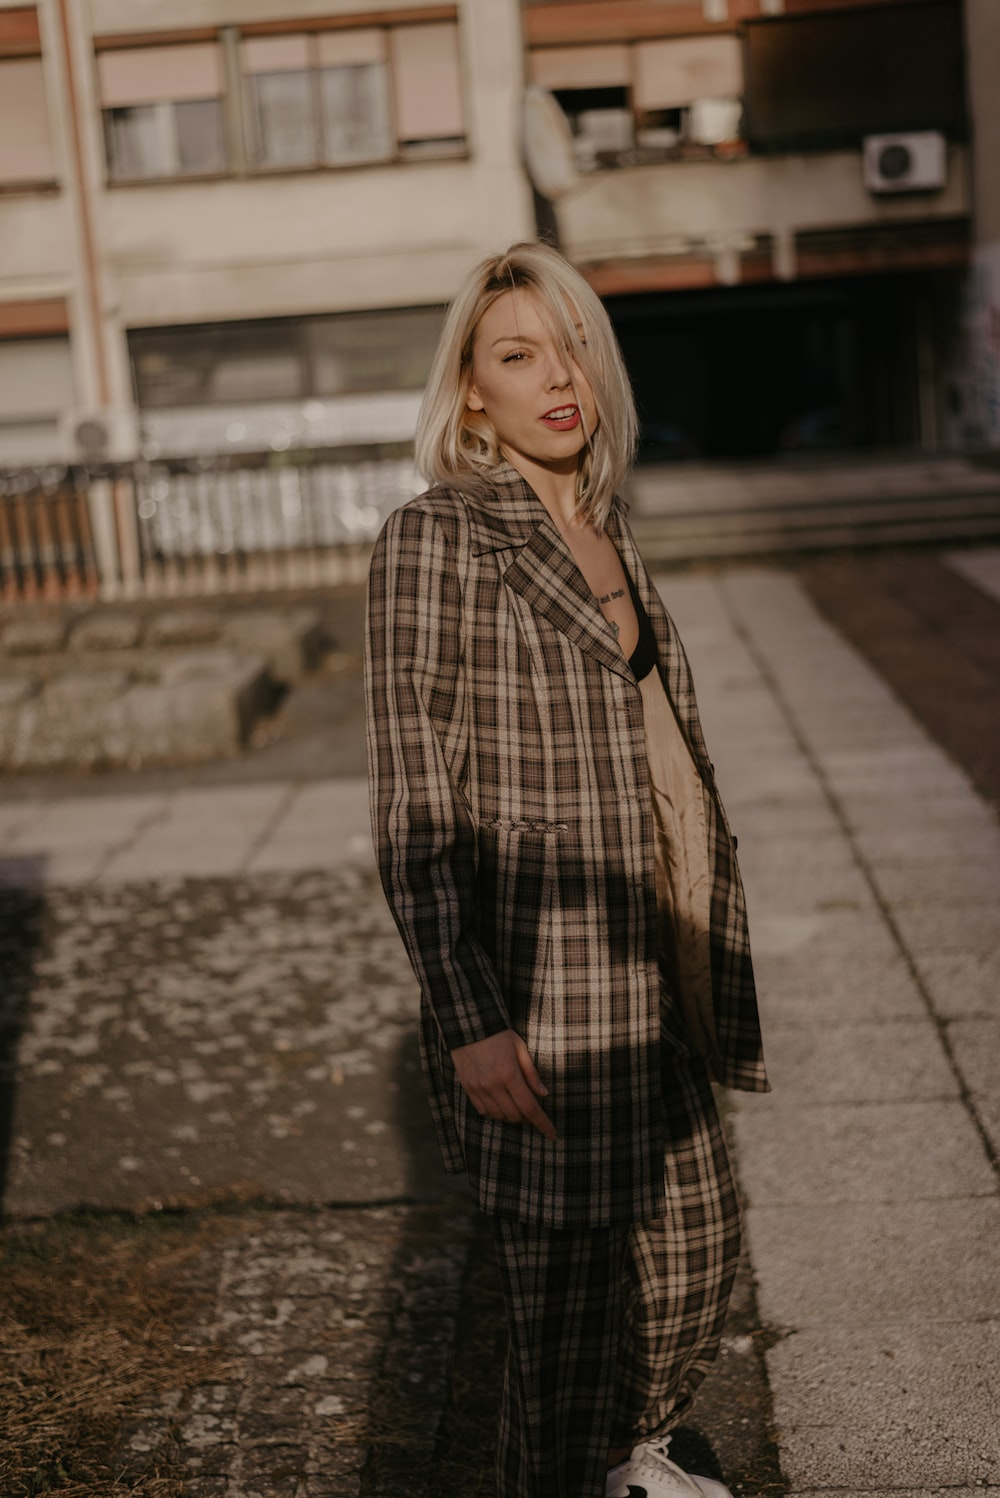 woman wearing brown and white plaid coat during daytime